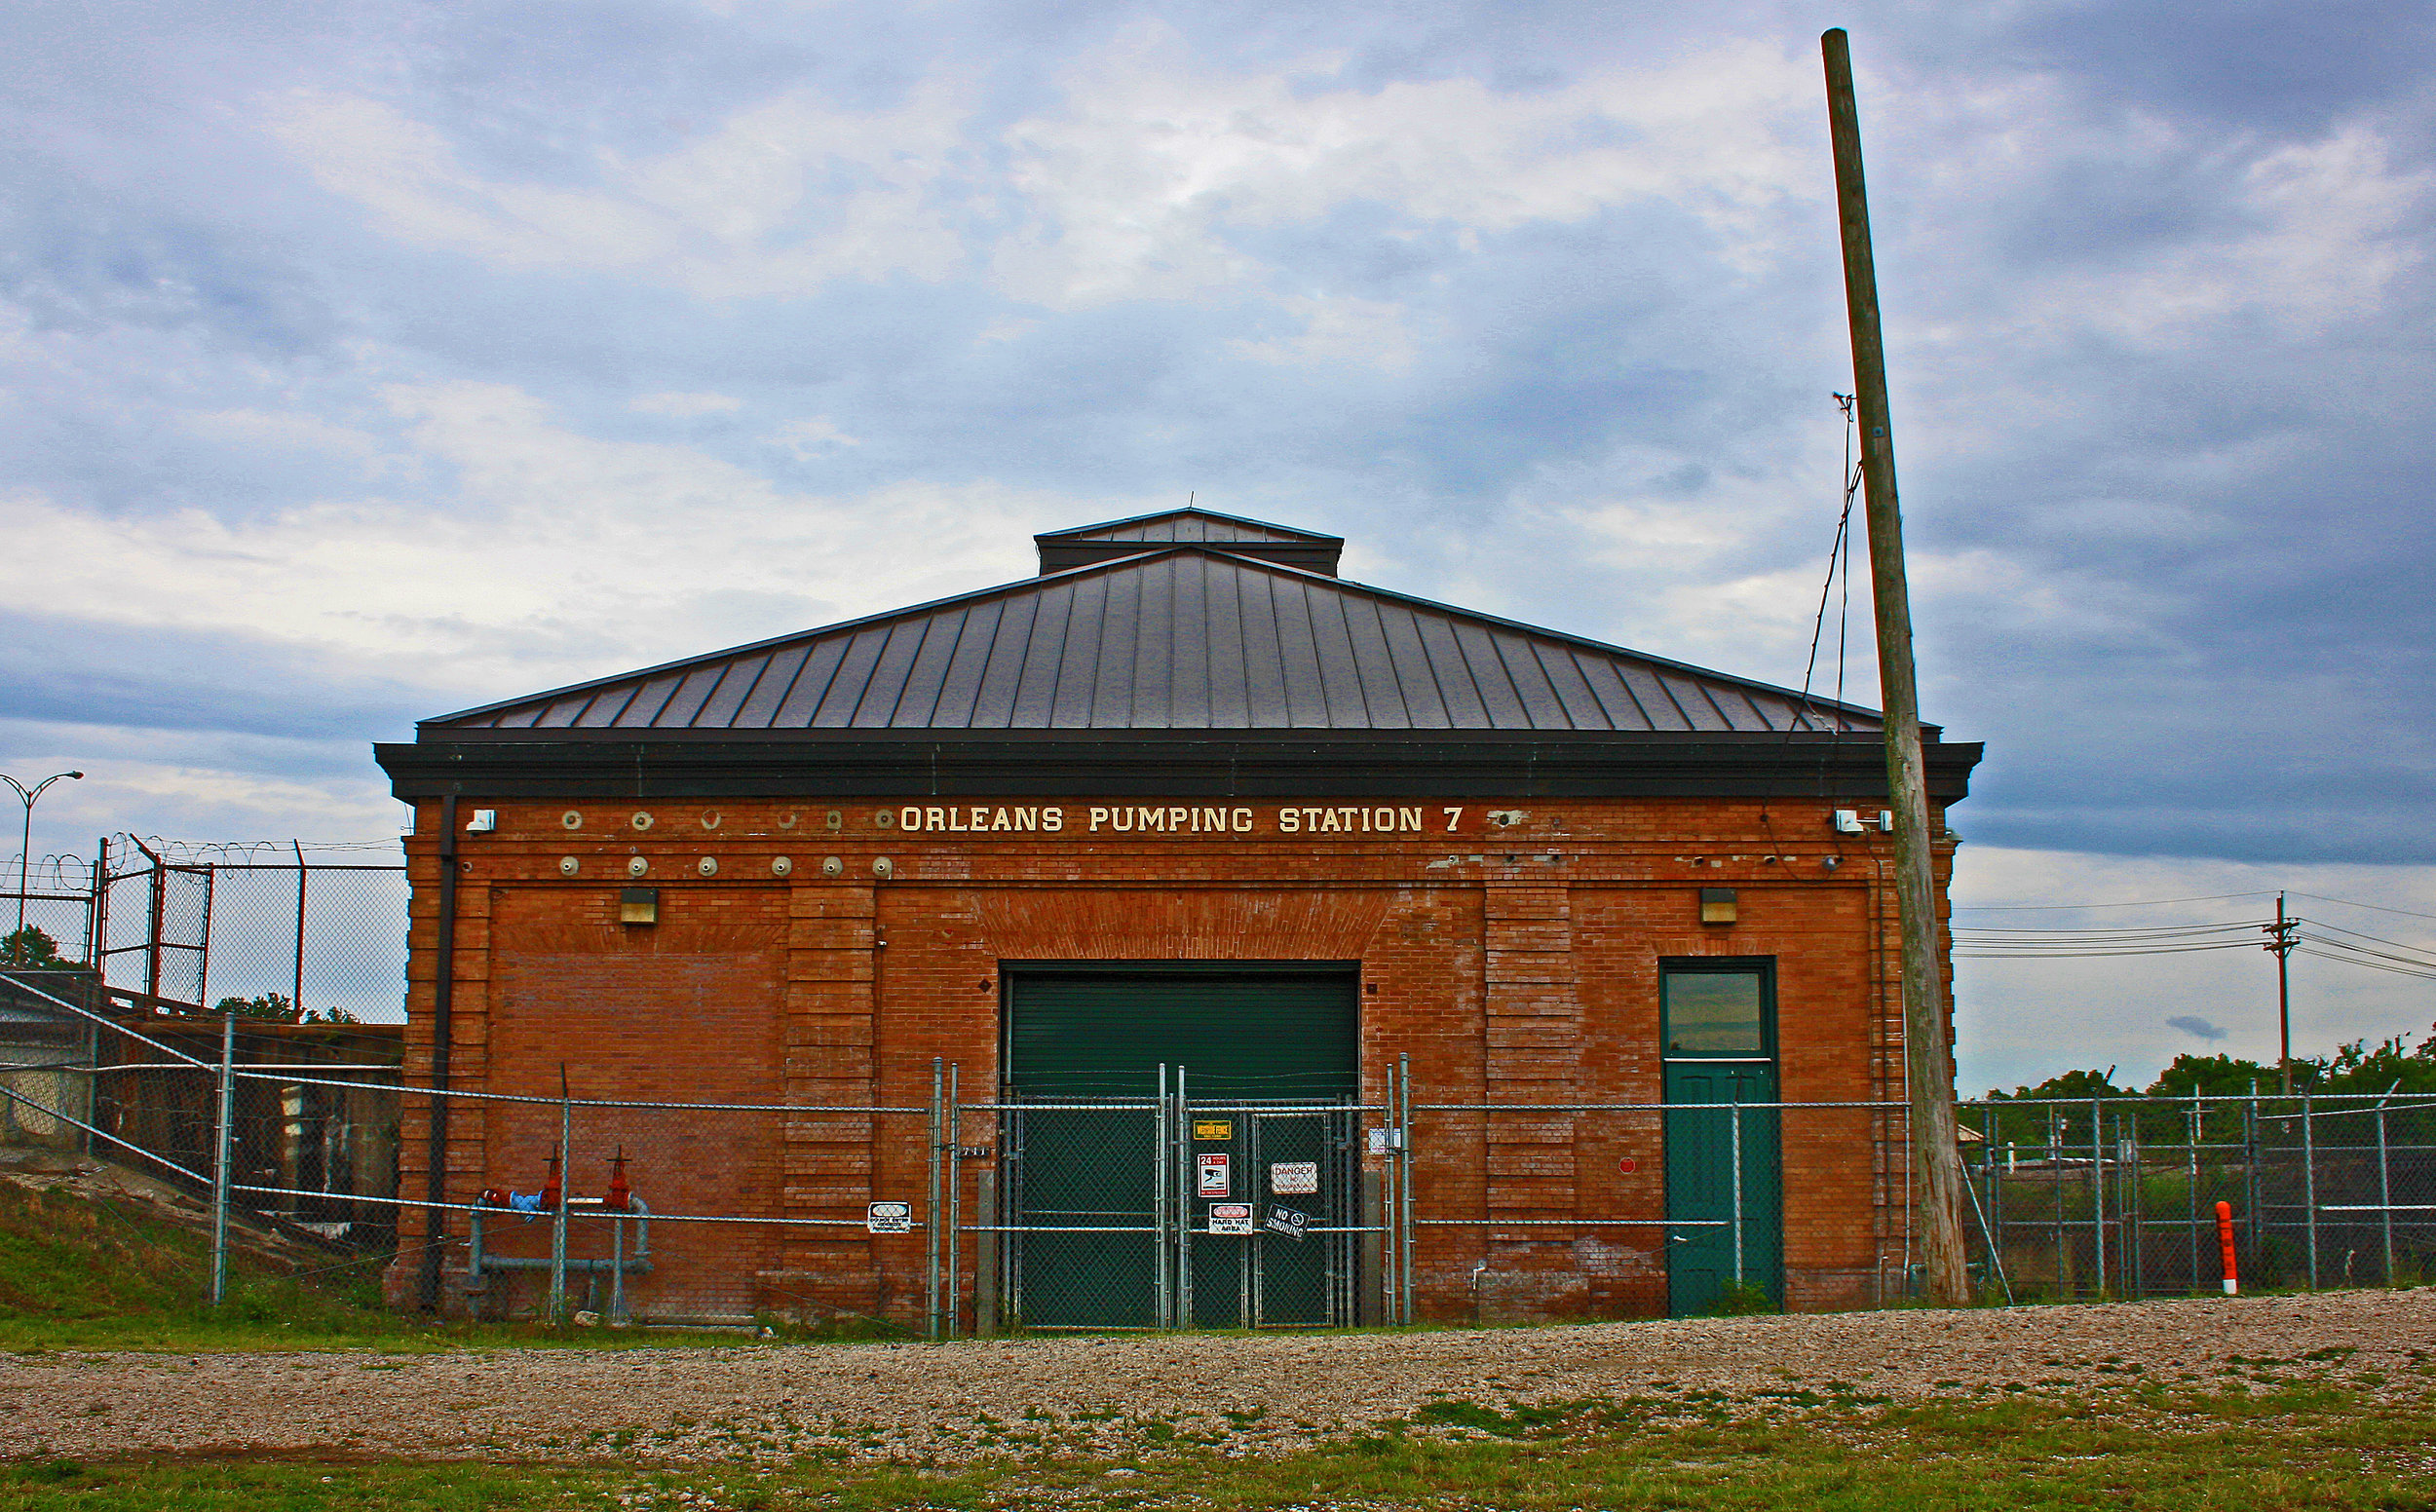 NOSBE Pumping Station